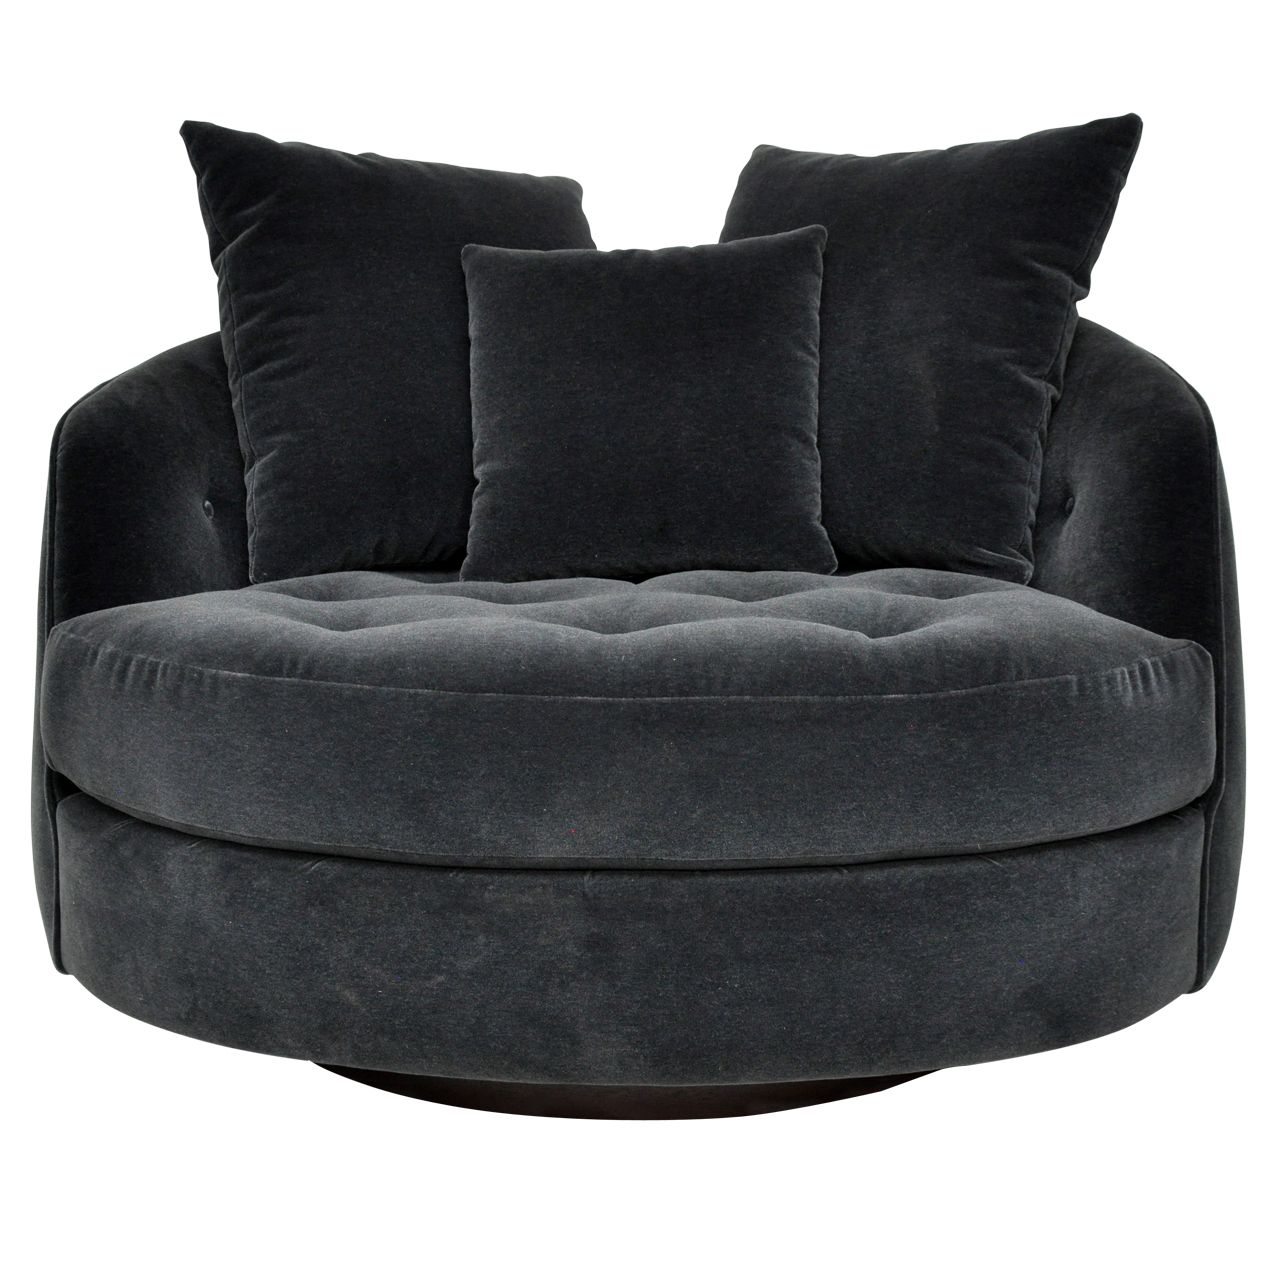 Snuggle Chairs Large Cuddle Chair By Milo Baughman F U R N I T U R E